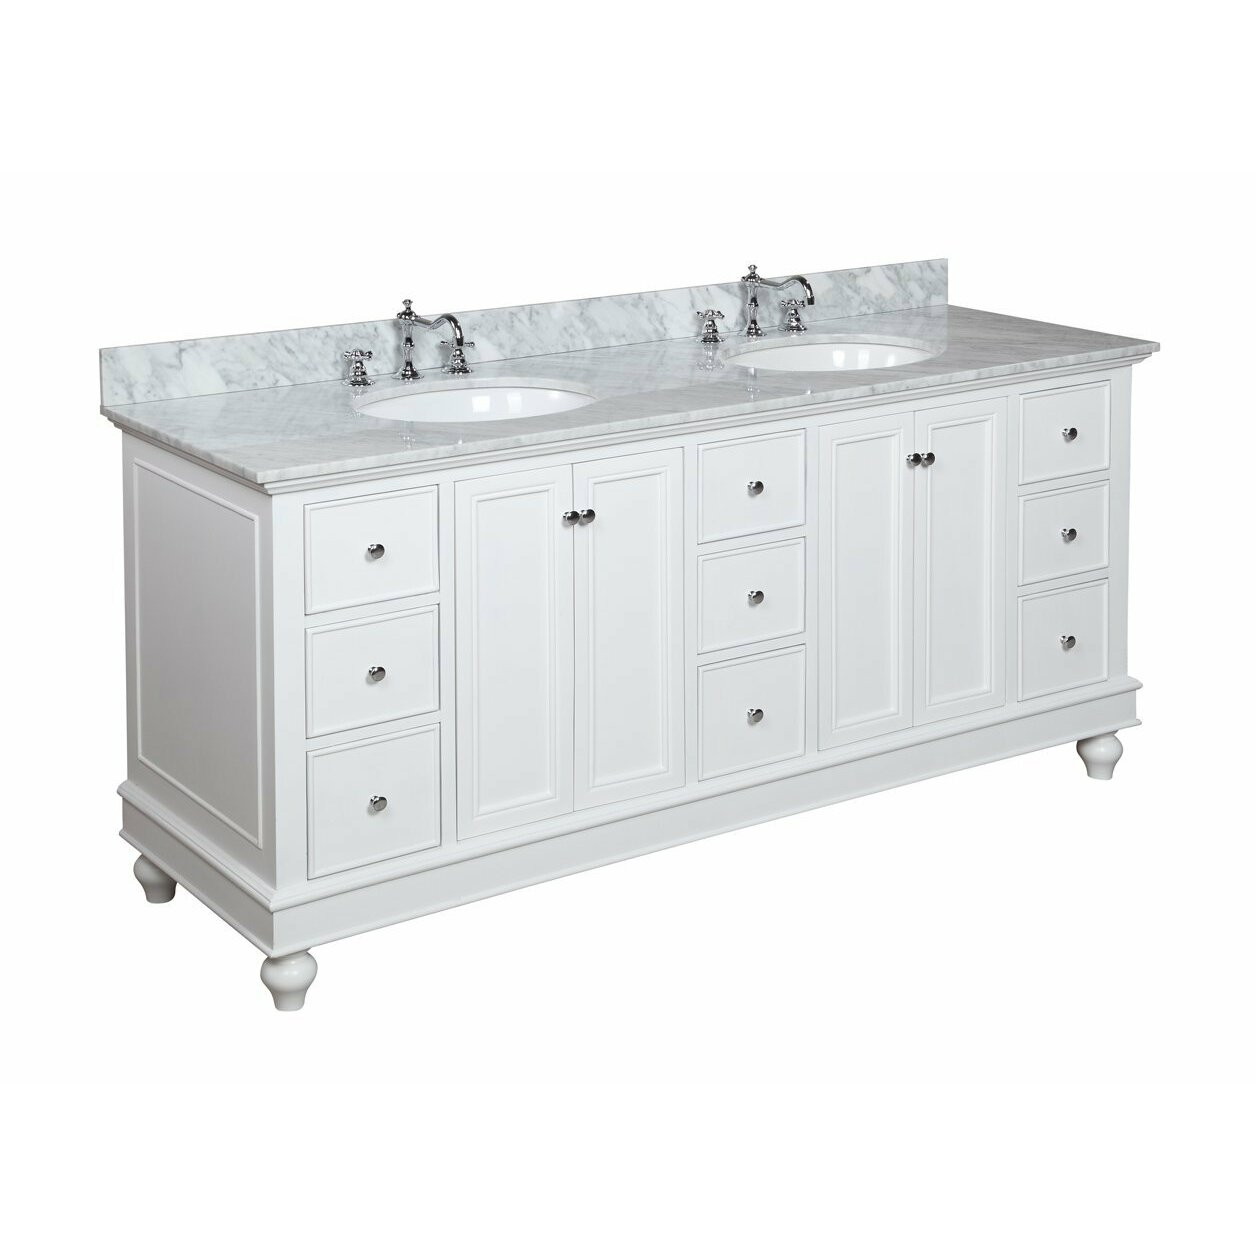 Kbc Bella 72 Double Bathroom Vanity Set Reviews Wayfair